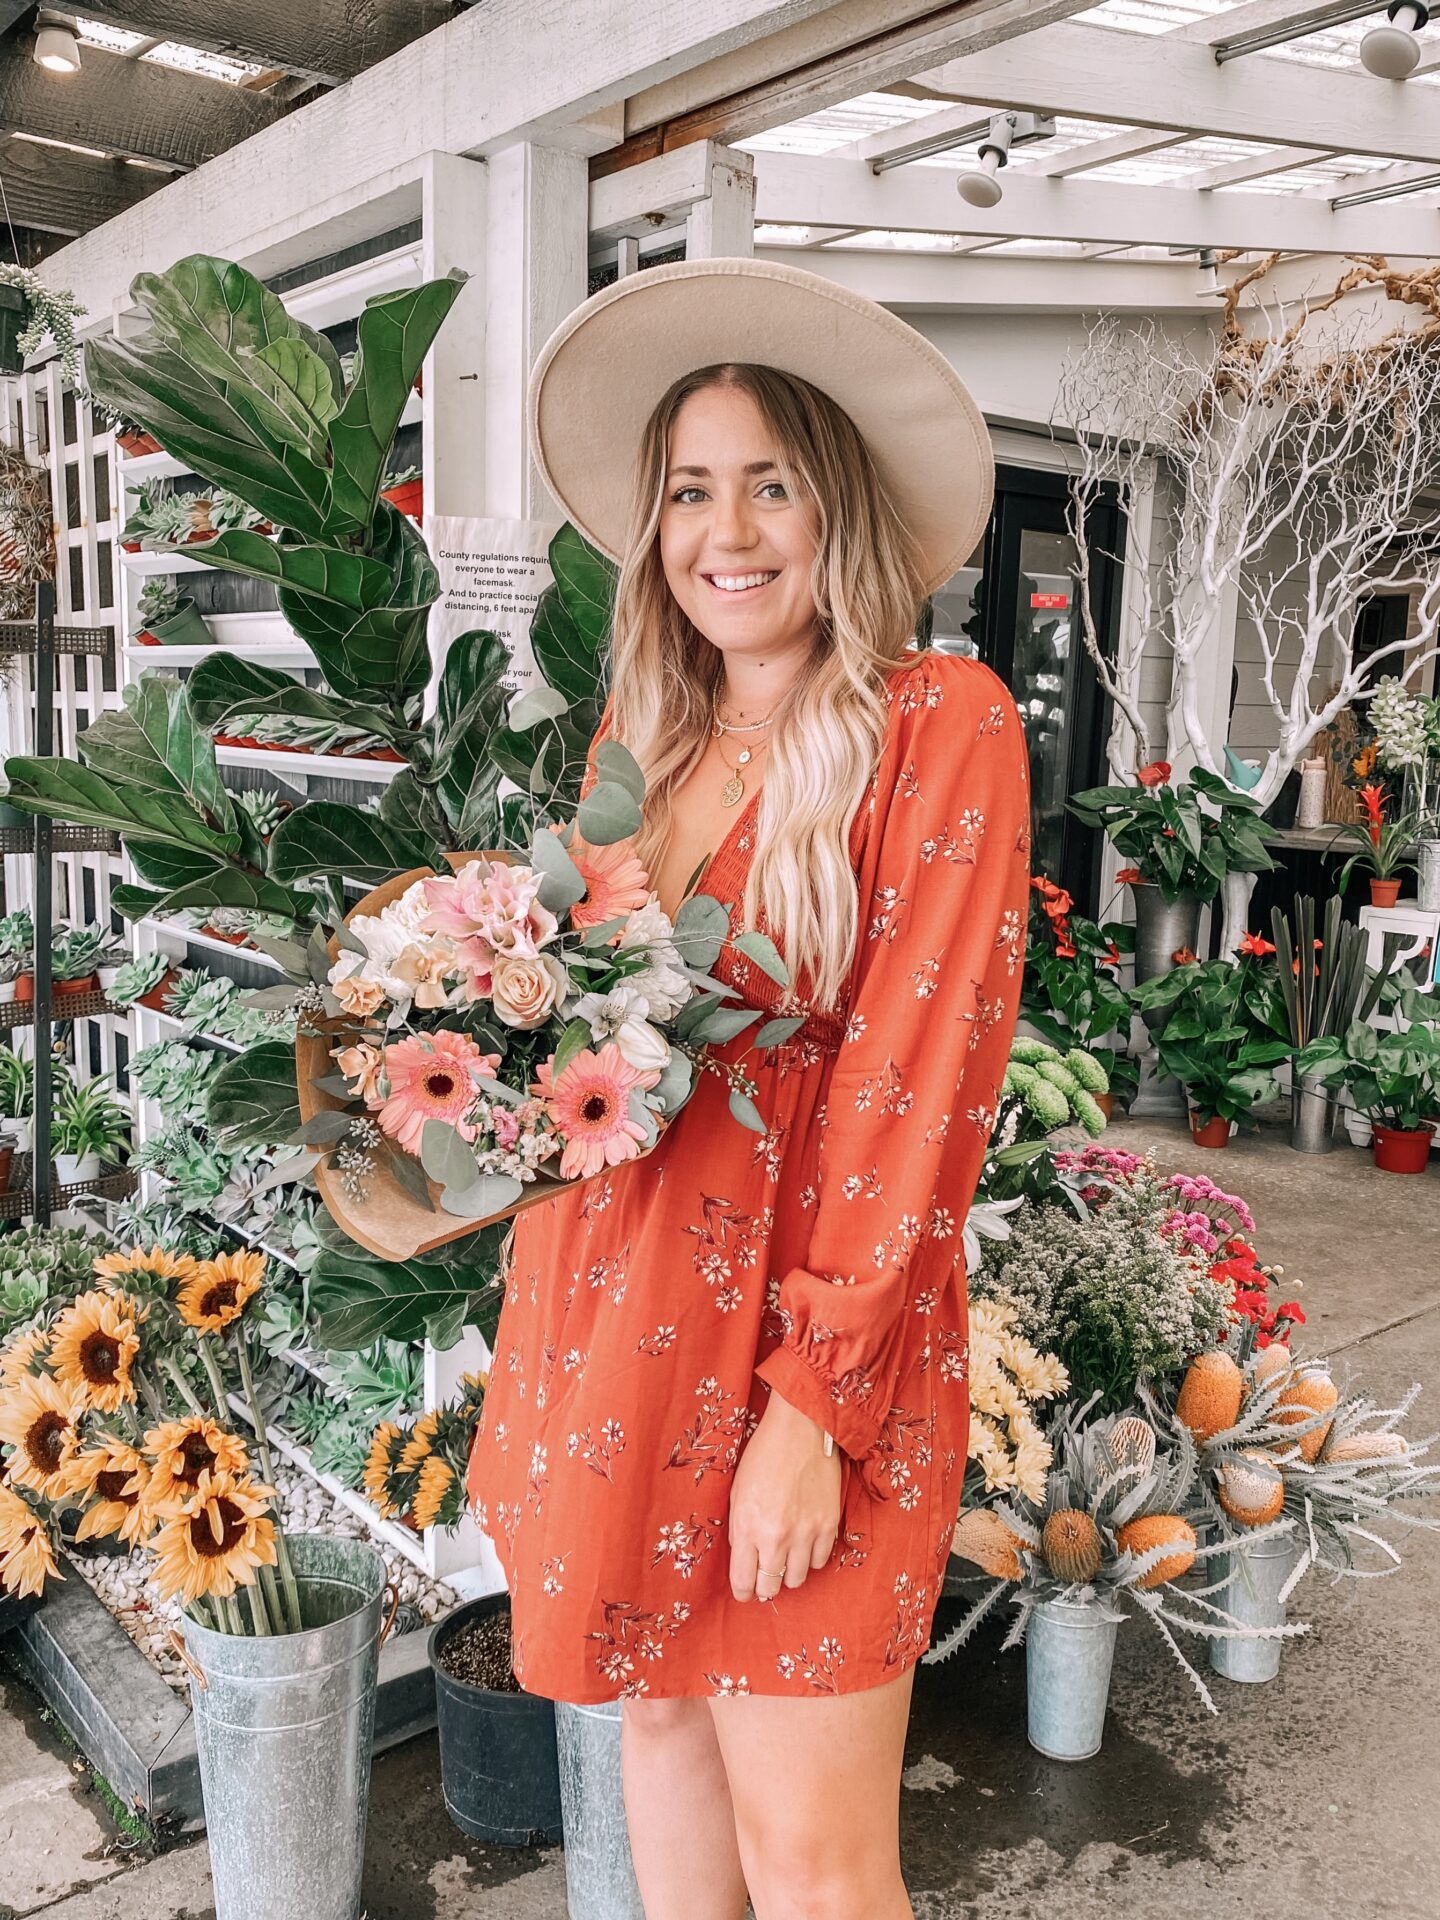 TOP 8 FALL/WINTER 2020 TRENDS - fall florals